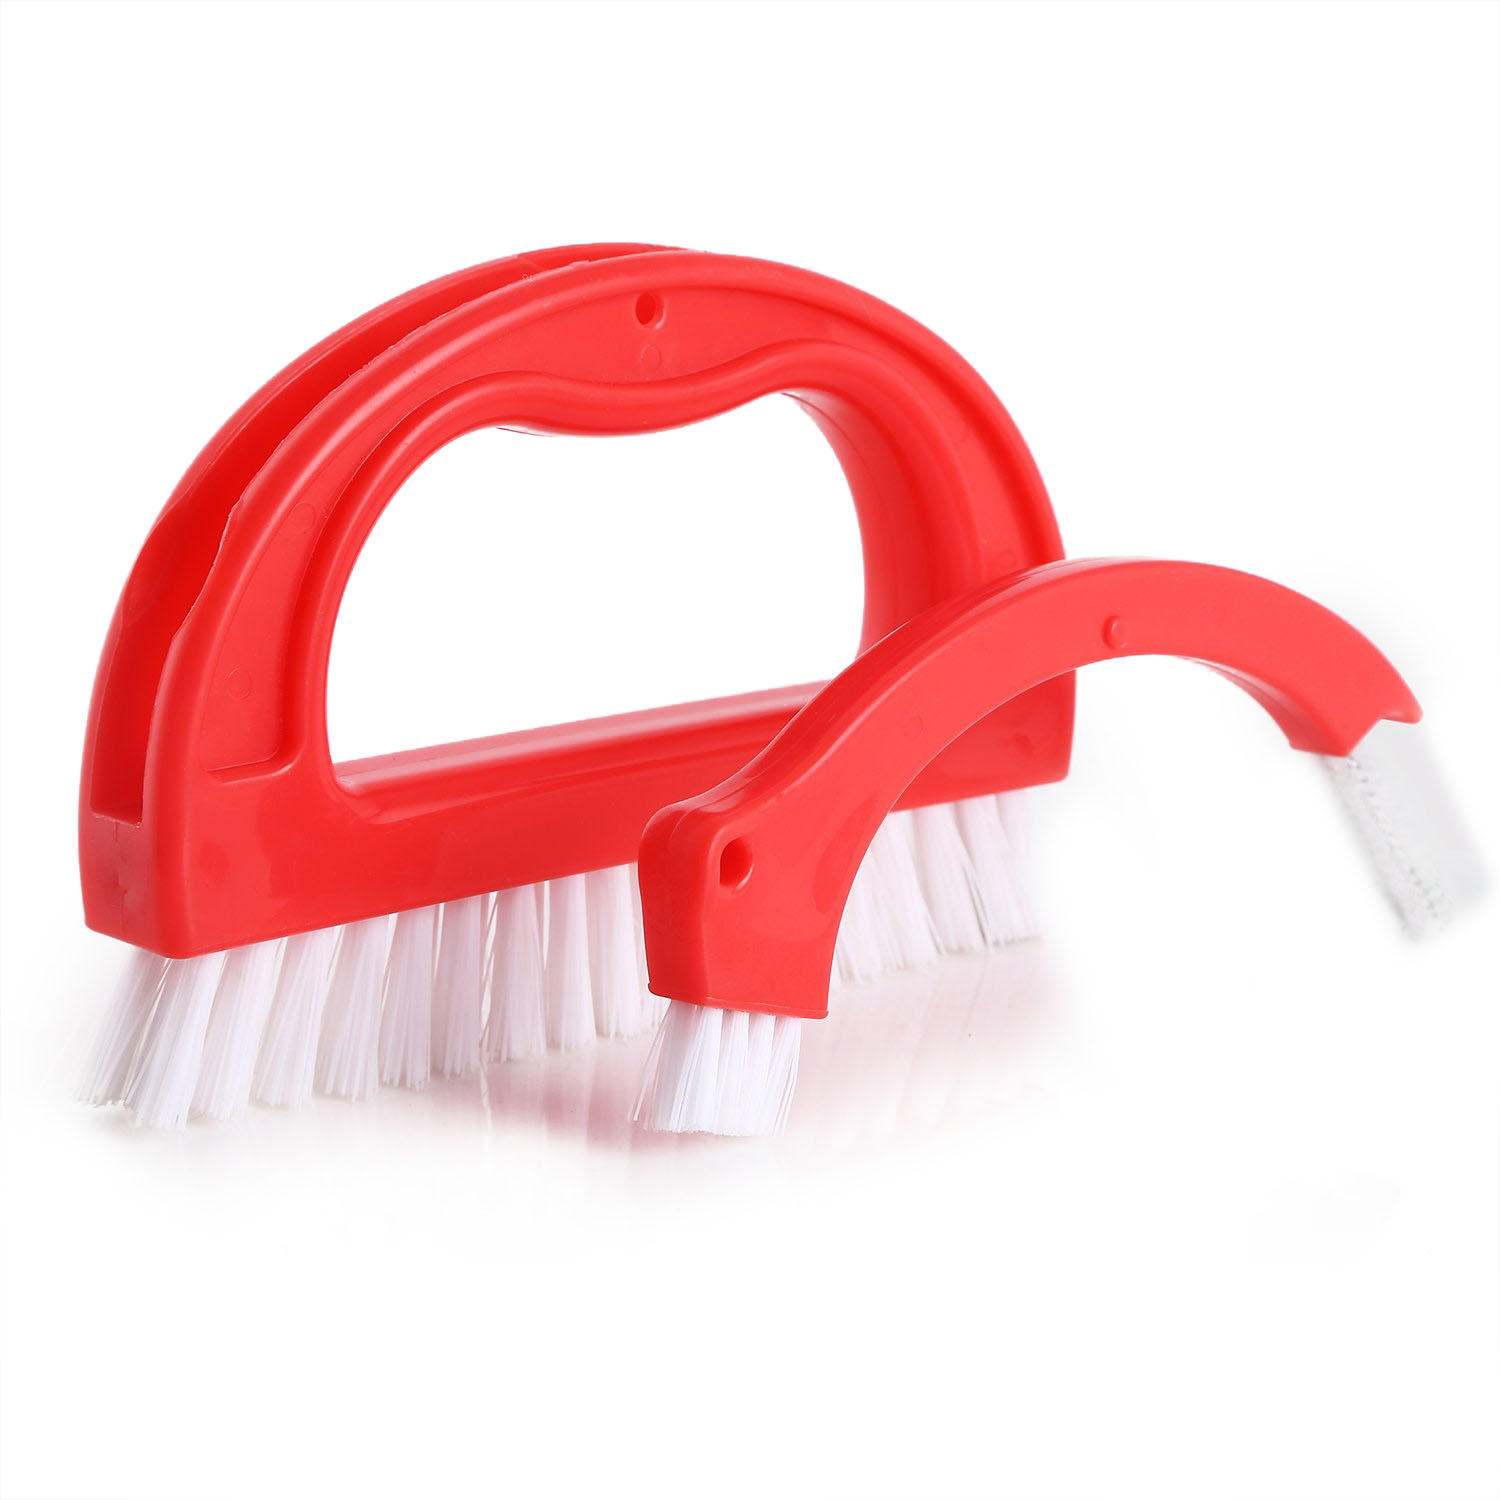 Cleaner Brush Tile Joint Cleaning Scrubber Brush With